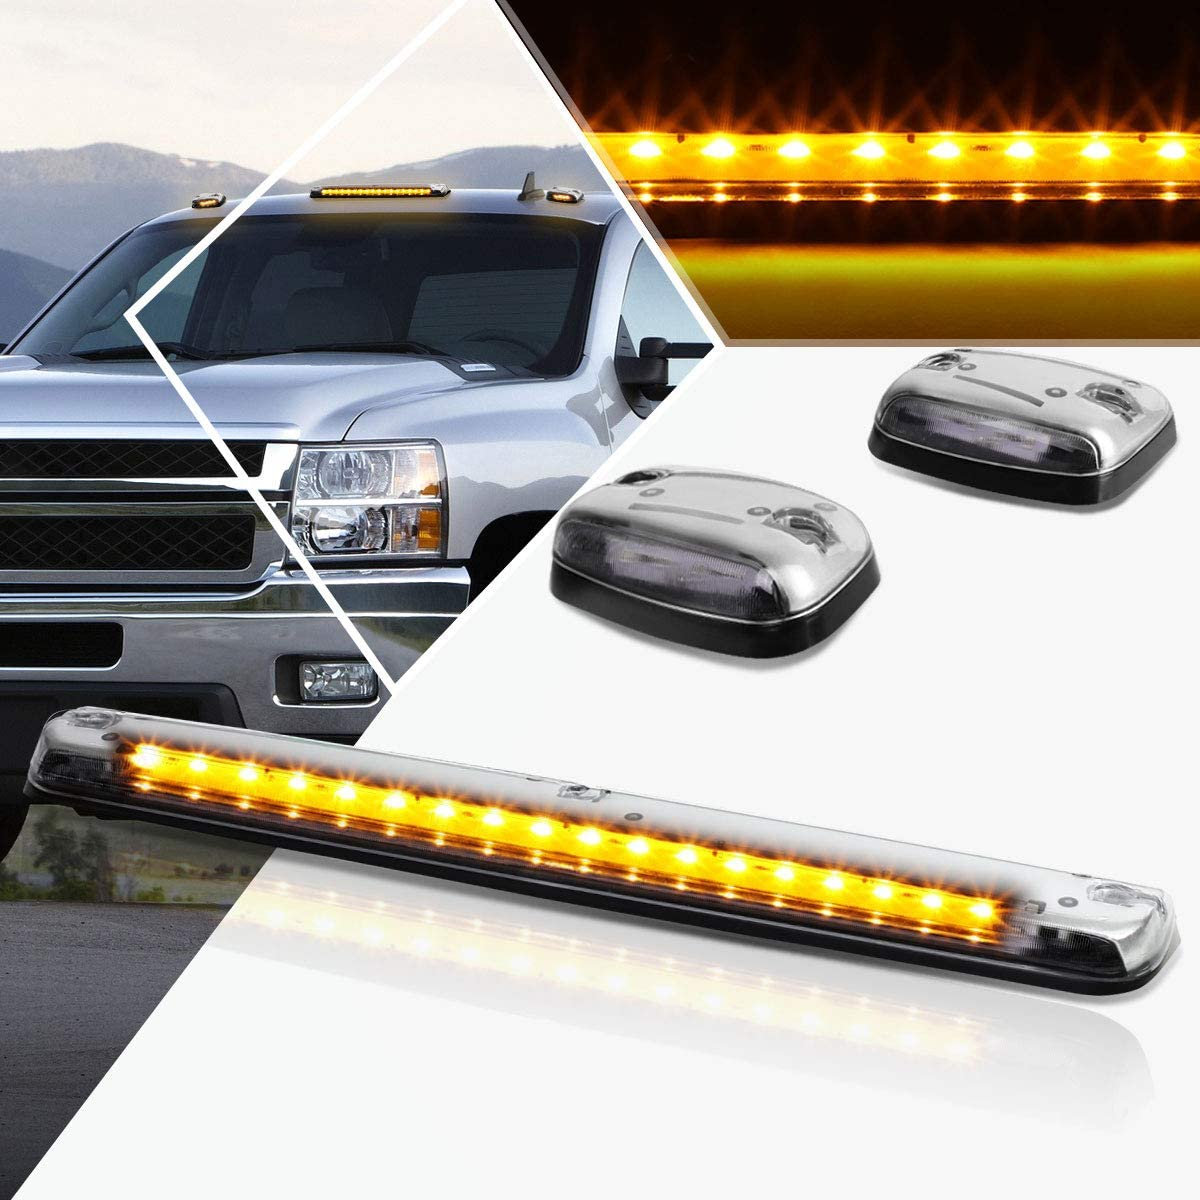 3Pcs-Set Indefinitely Yellow LED Cab Roof with Max 64% OFF Compatible Running 07-13 Light